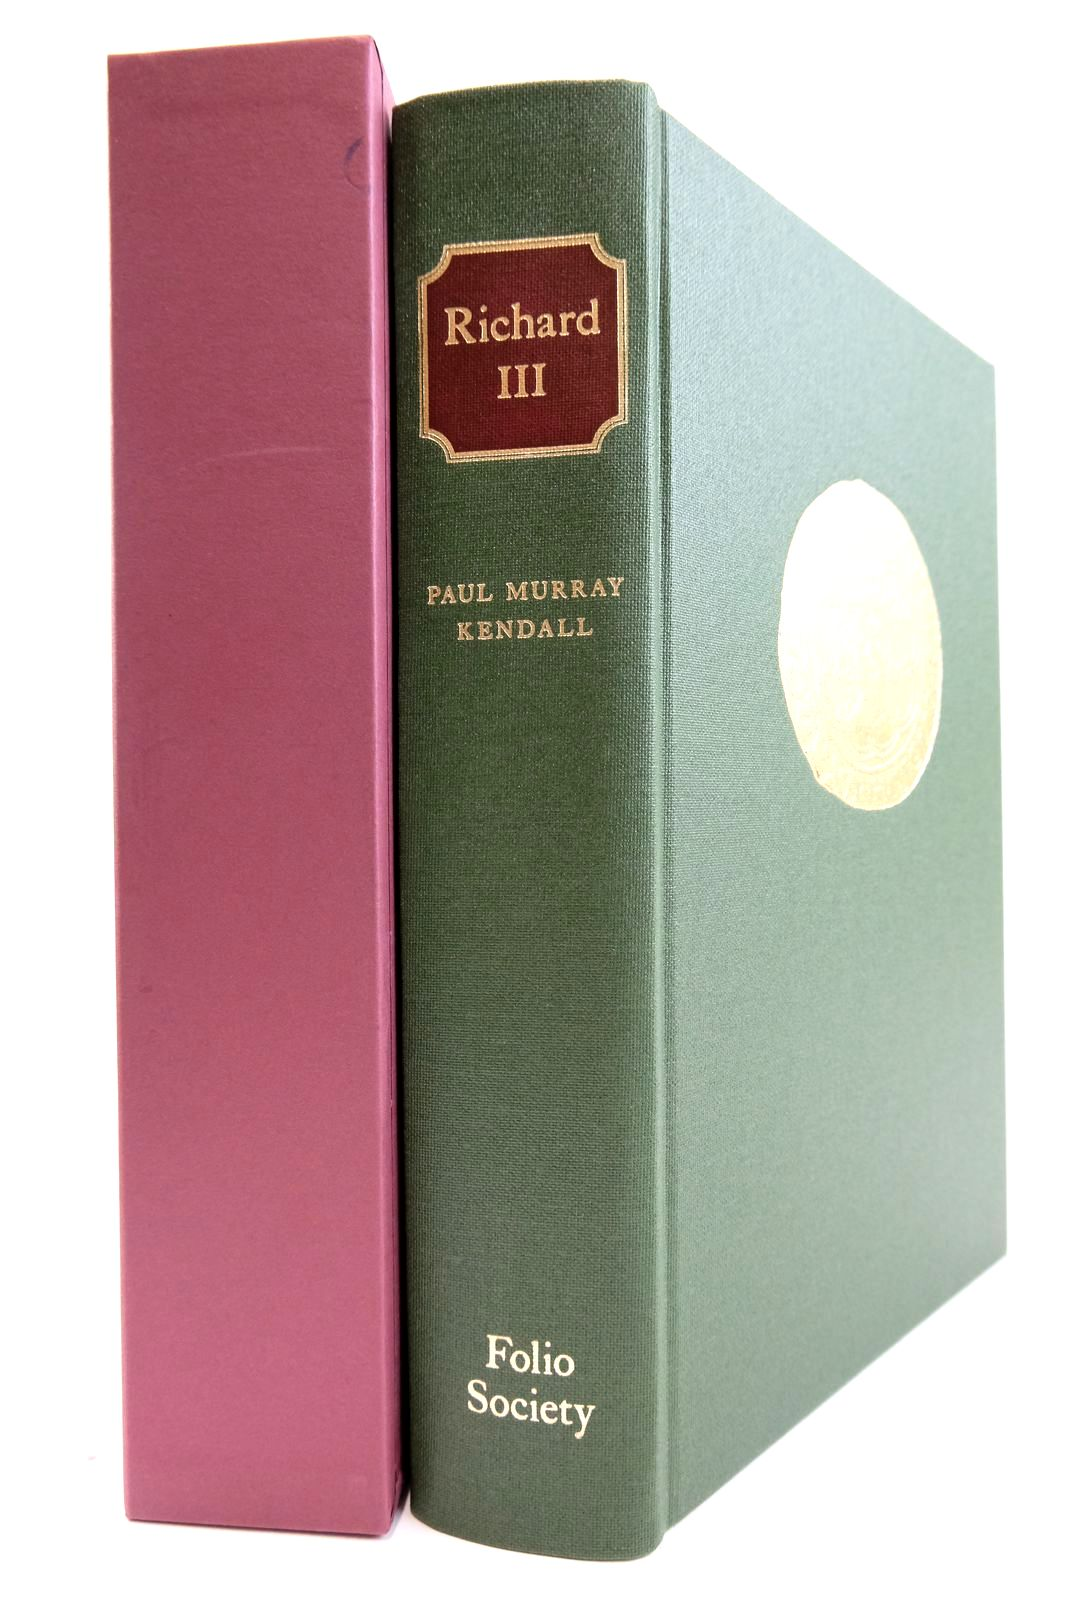 Photo of RICHARD III written by Kendall, Paul Murray published by Folio Society (STOCK CODE: 2133236)  for sale by Stella & Rose's Books